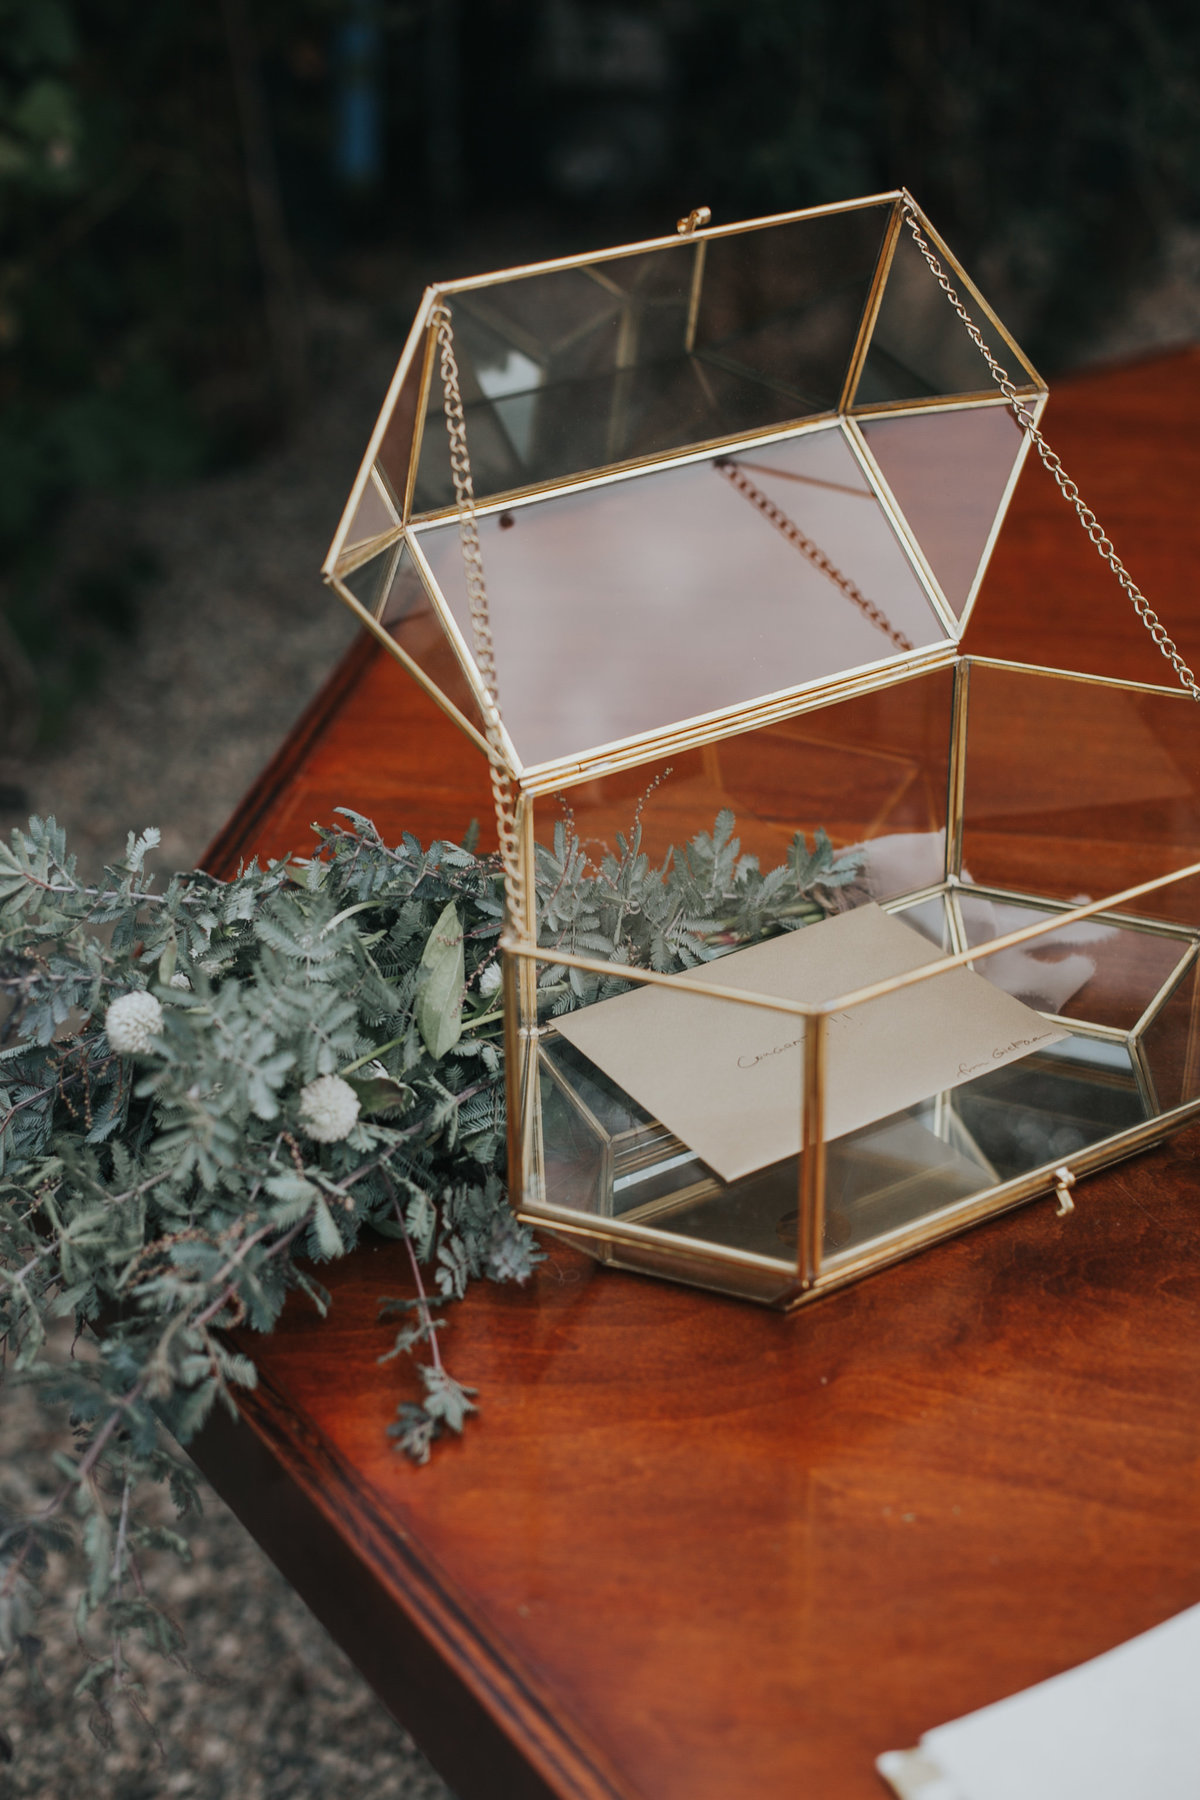 Wedding welcome table with glass geometric cardbox and eucalyptus leaves